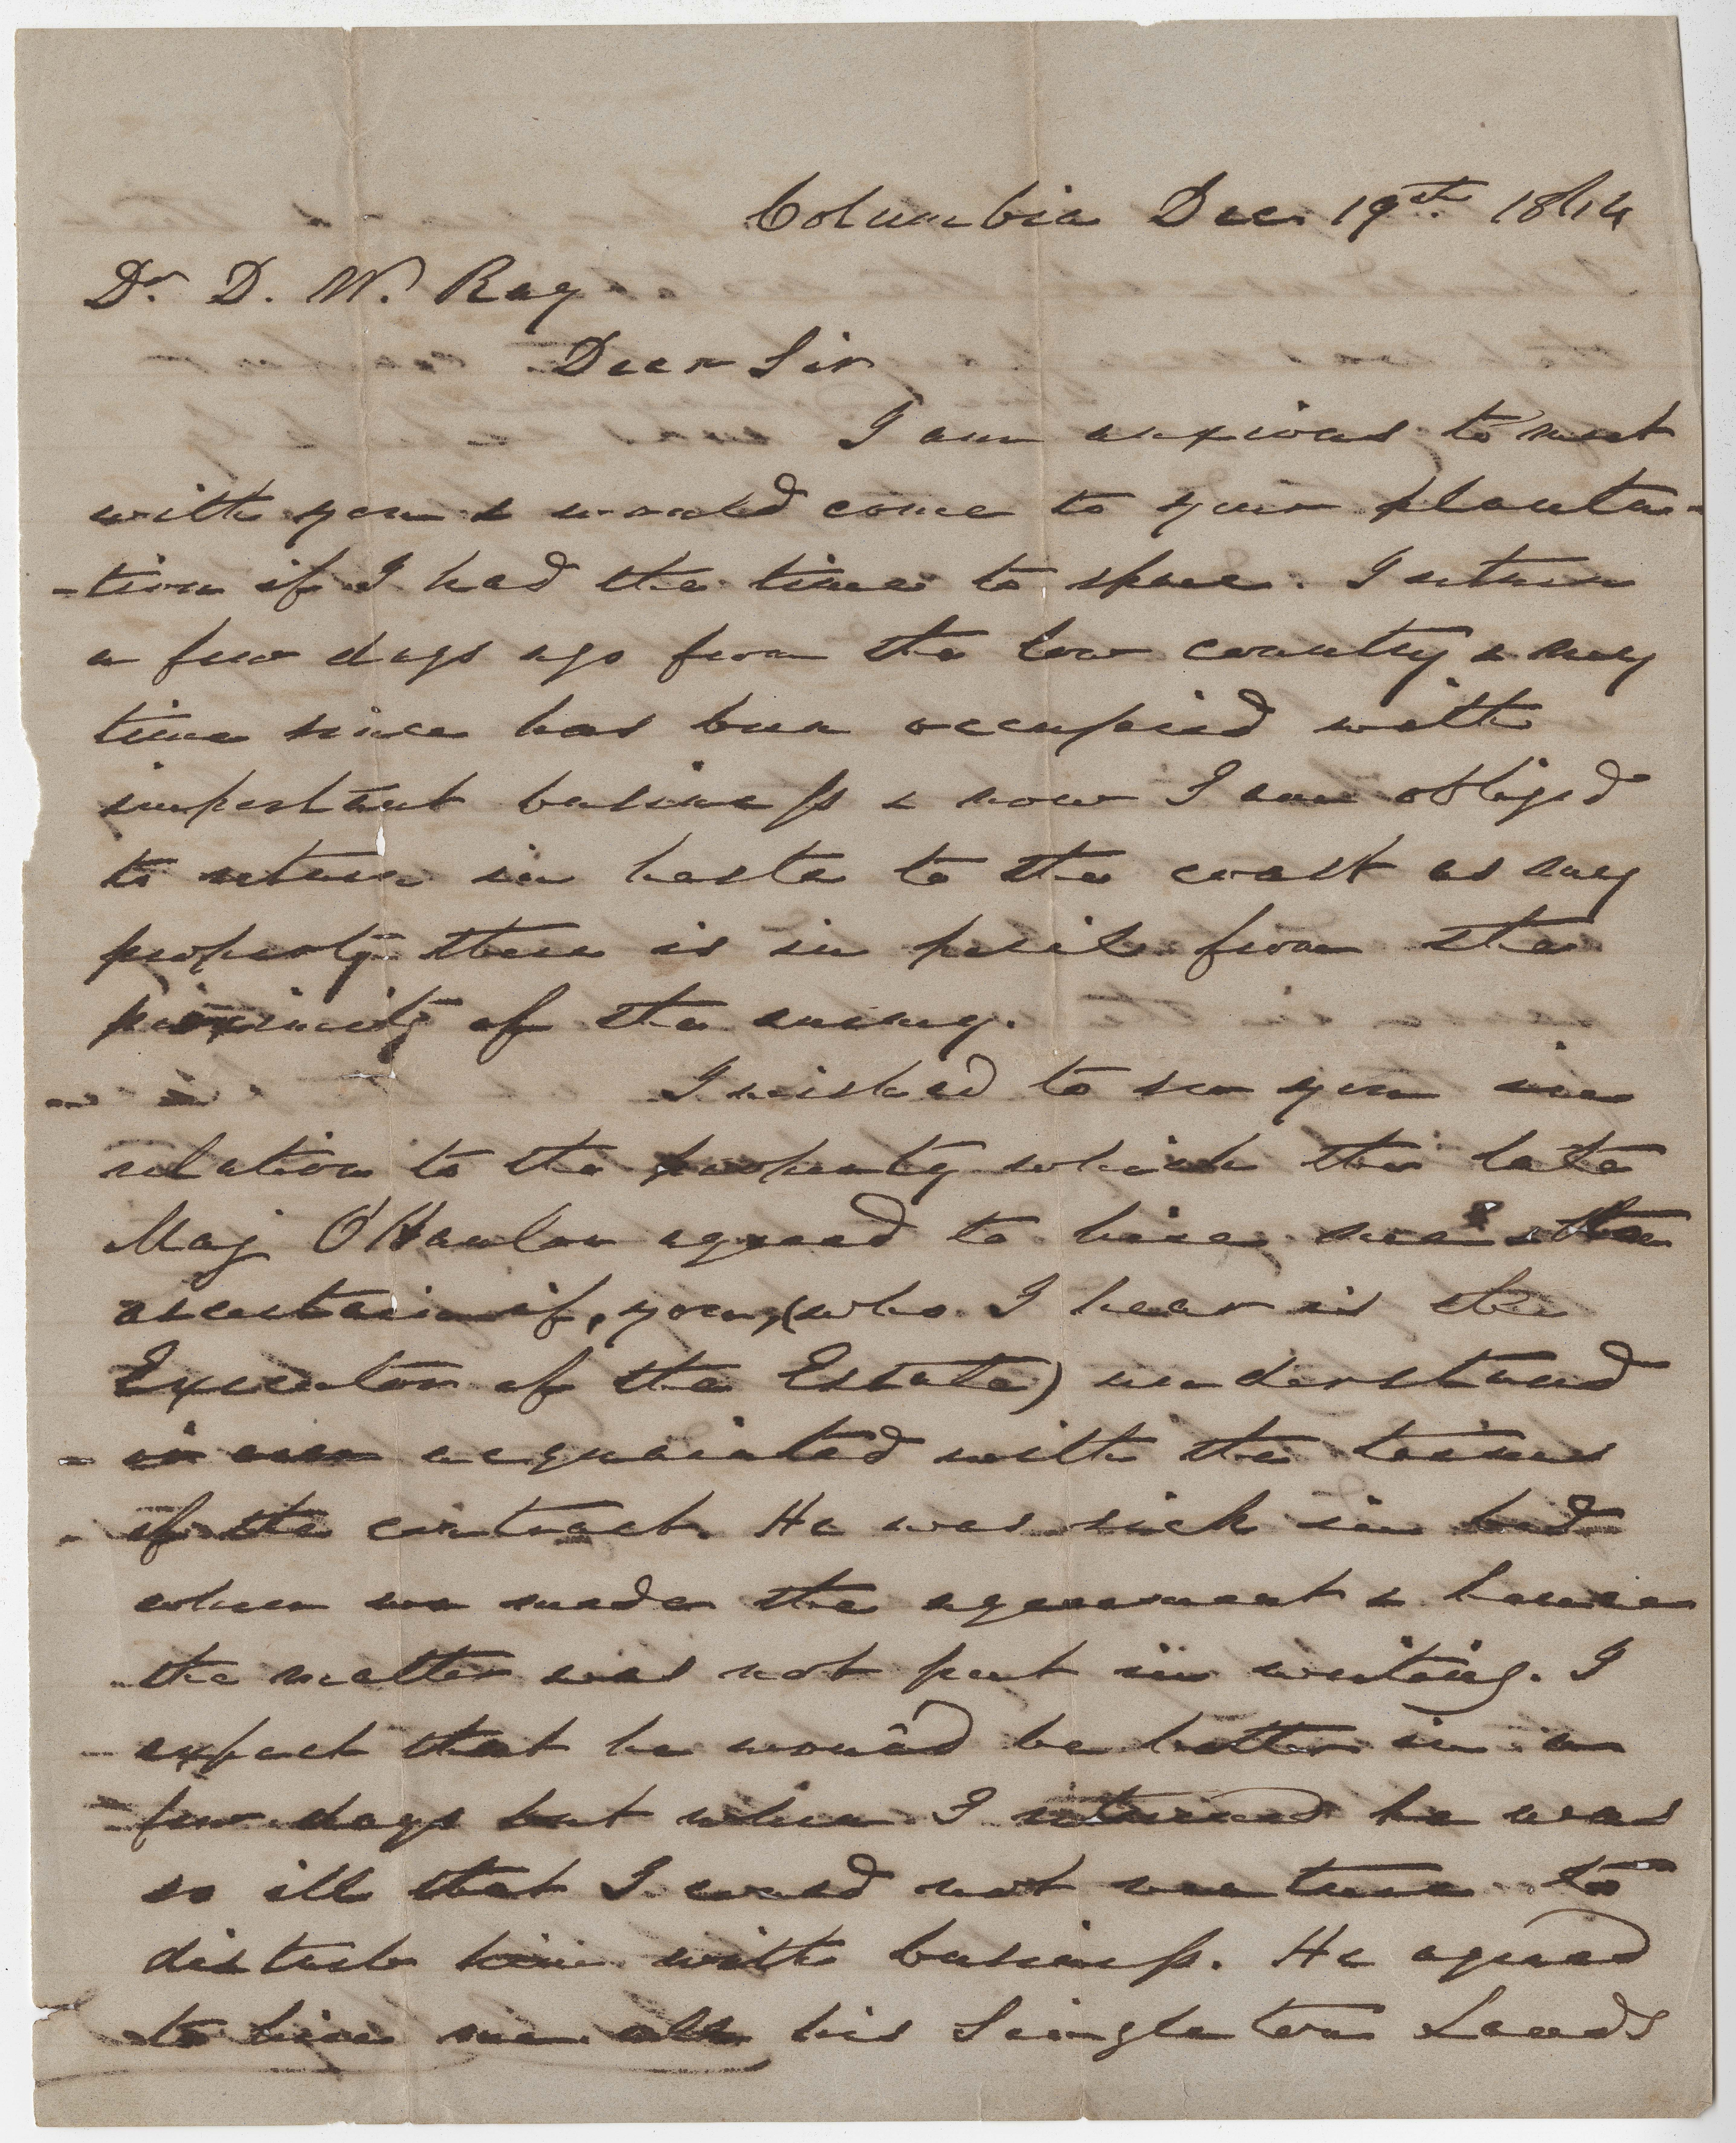 225. James B. Heyward to Dr. D.W. Ray -- December 19, 1864